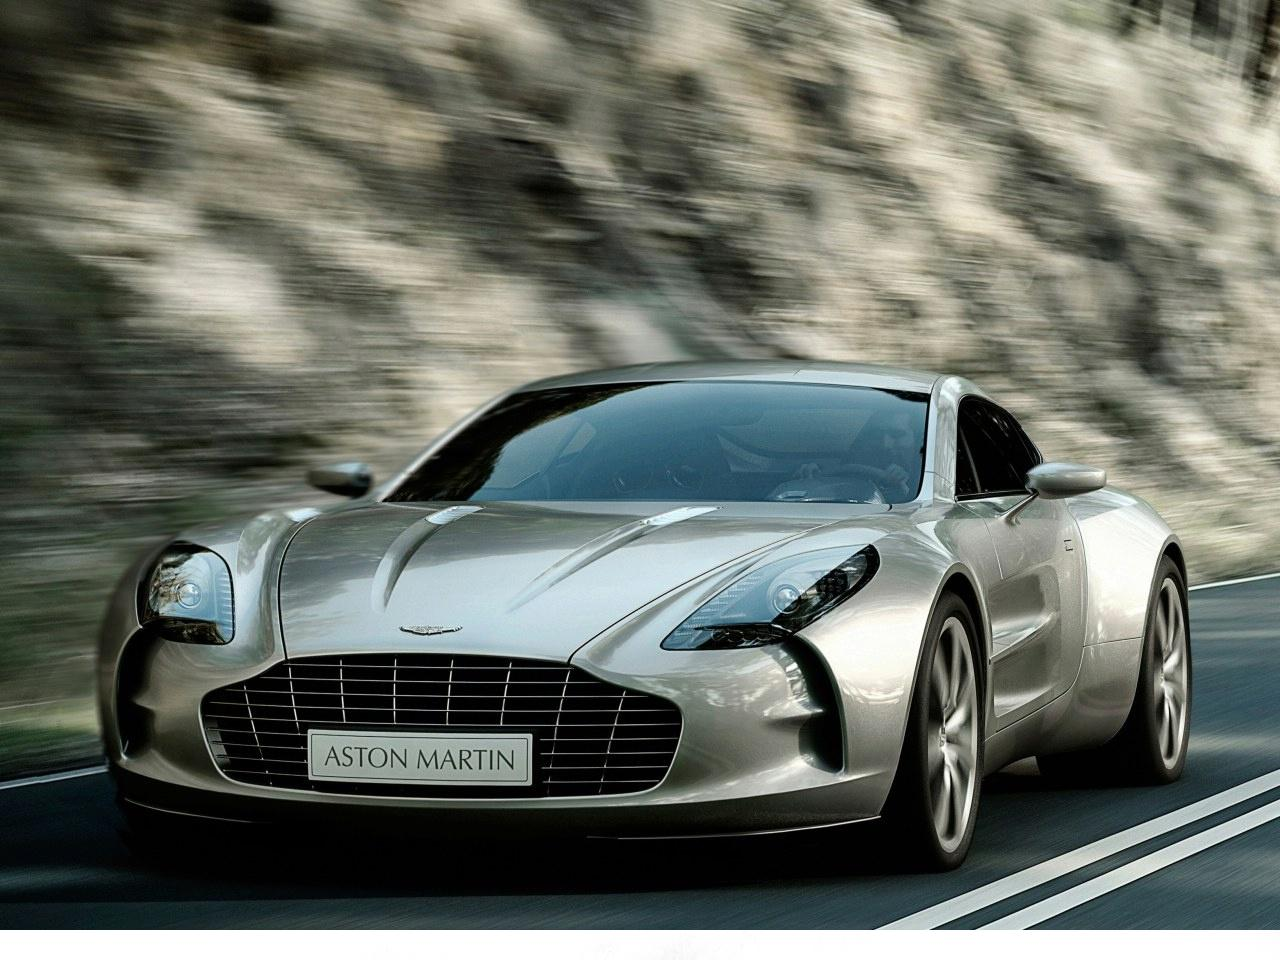 31 Aston Martin One-77 HD Wallpapers | Backgrounds - Wallpaper Abyss